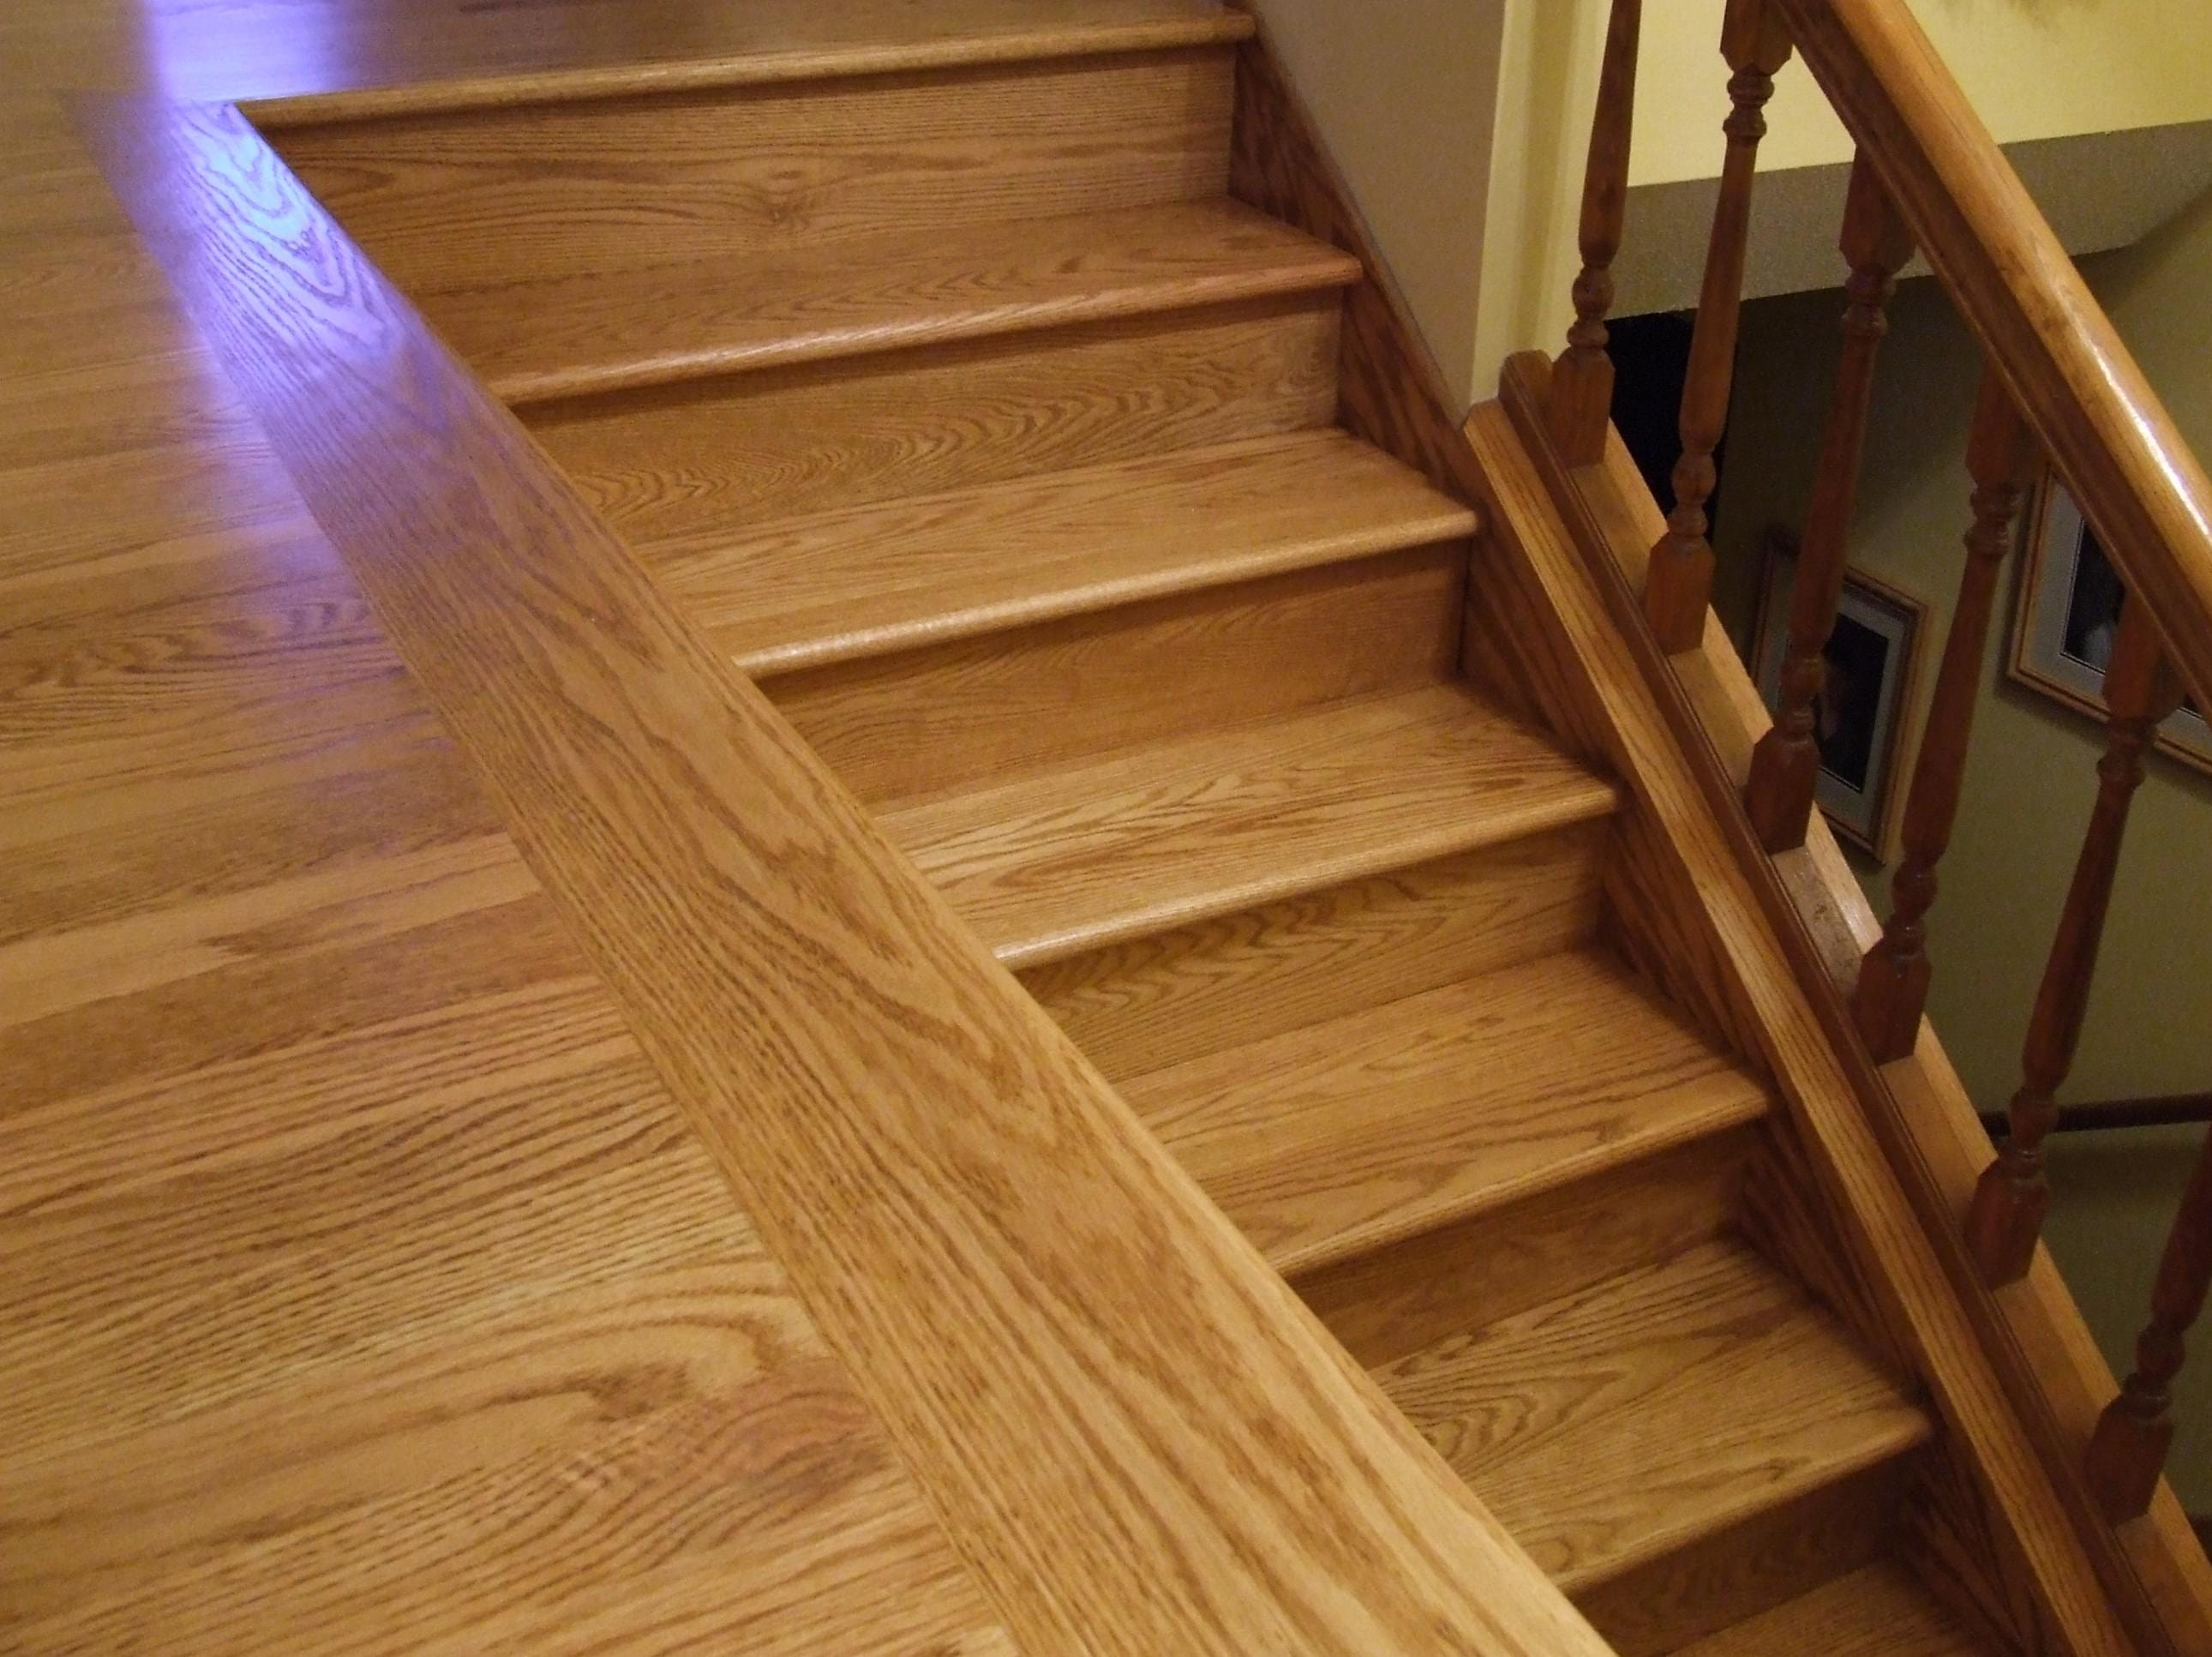 Installing Hardwood Floors Is Explained In Detail